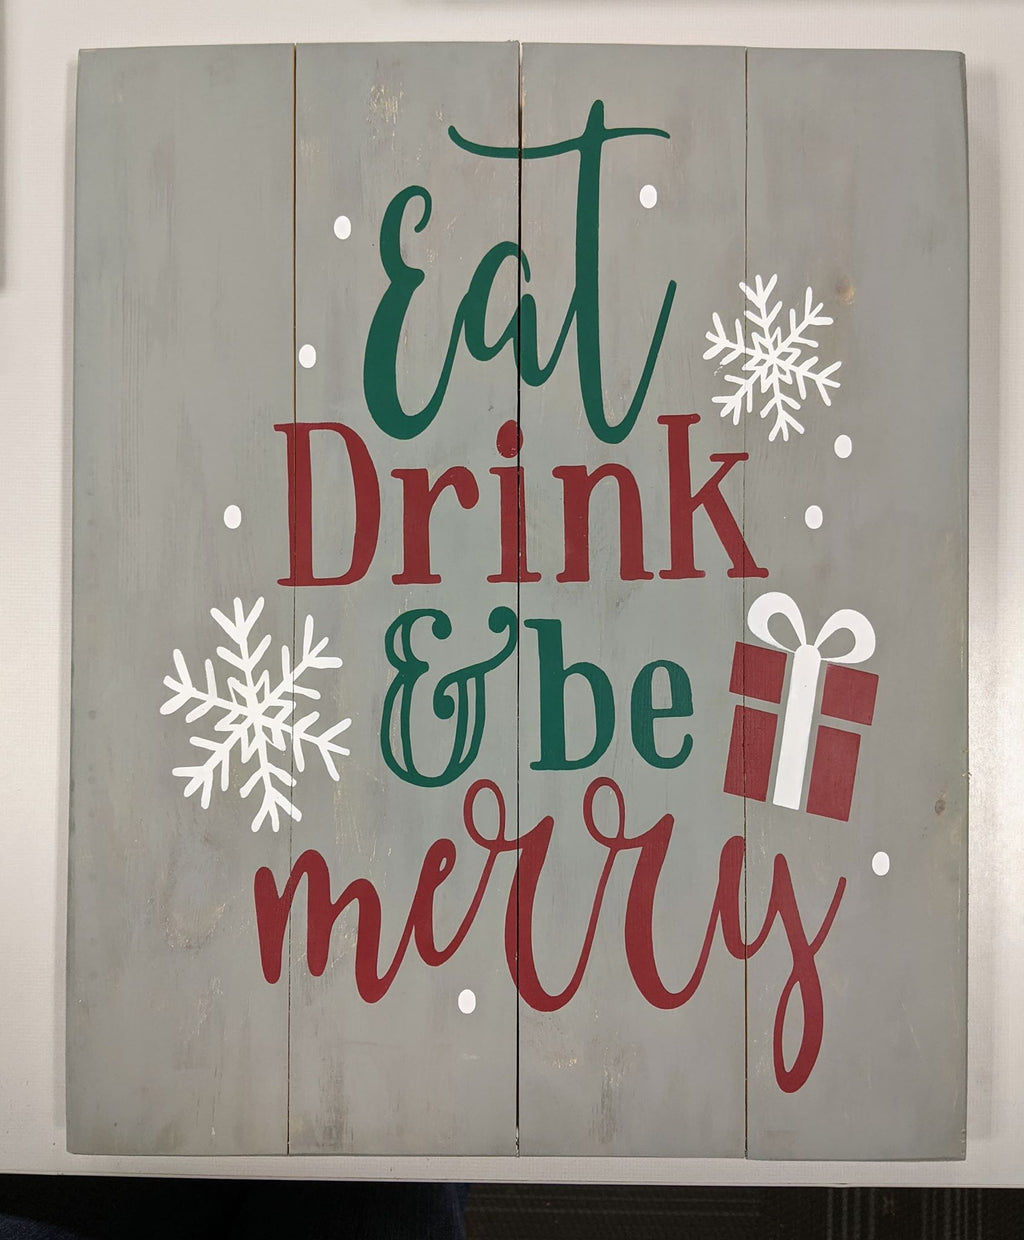 Eat drink and be merry with snowflakes and present